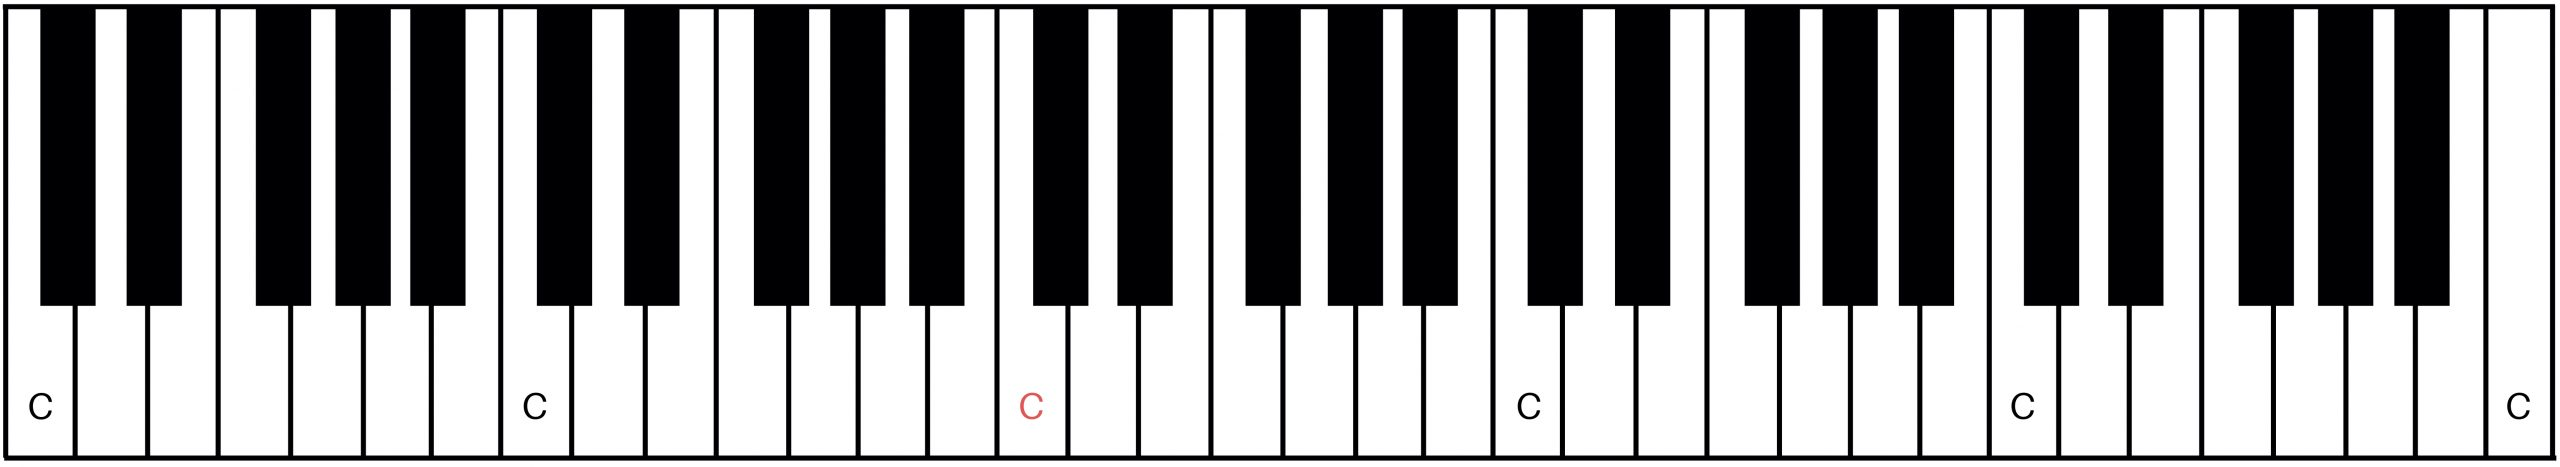 Keyboardist - Middle C on 5 Octave Keyboard